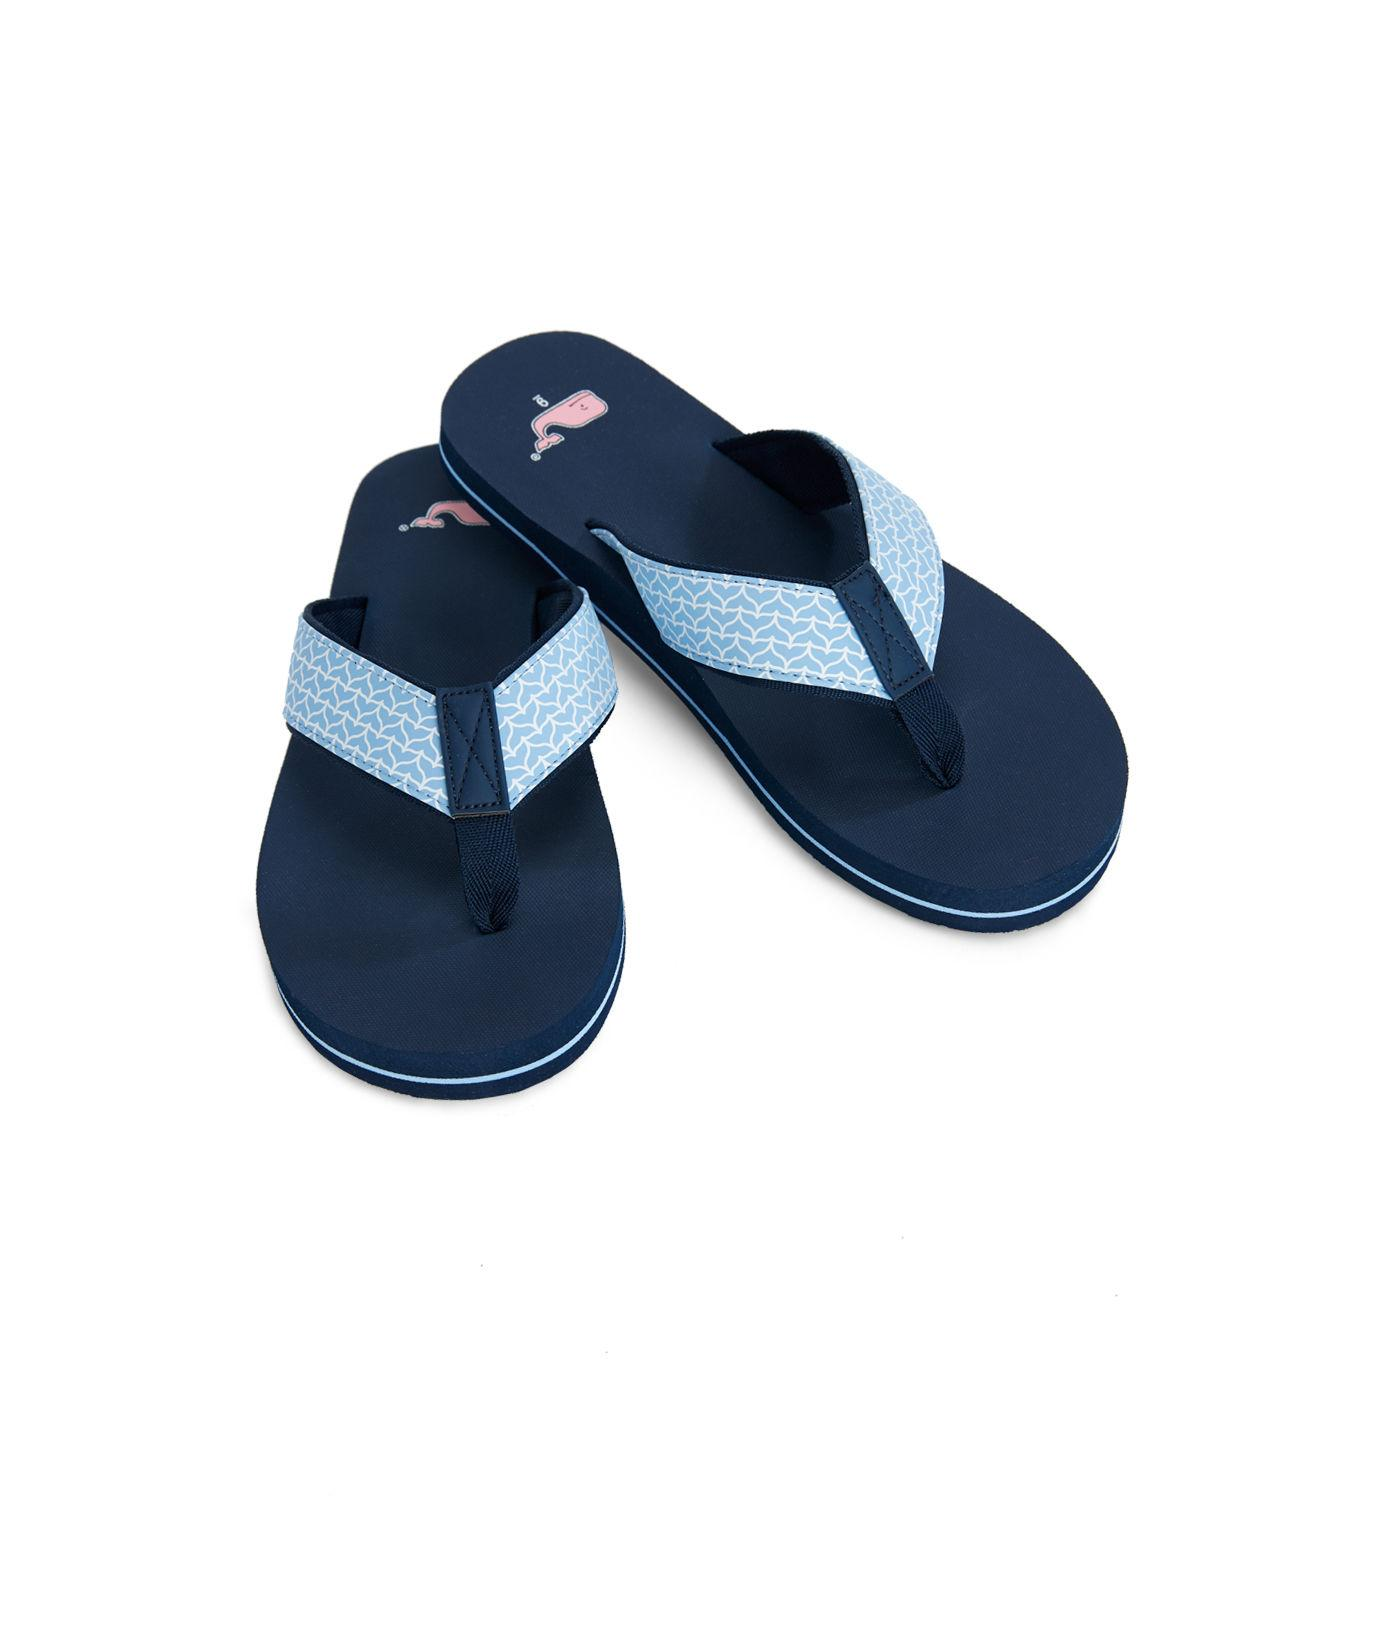 bee328e86f89 Vineyard Vines - Blue Whale Tail Classic Flip Flops - Lyst. View fullscreen